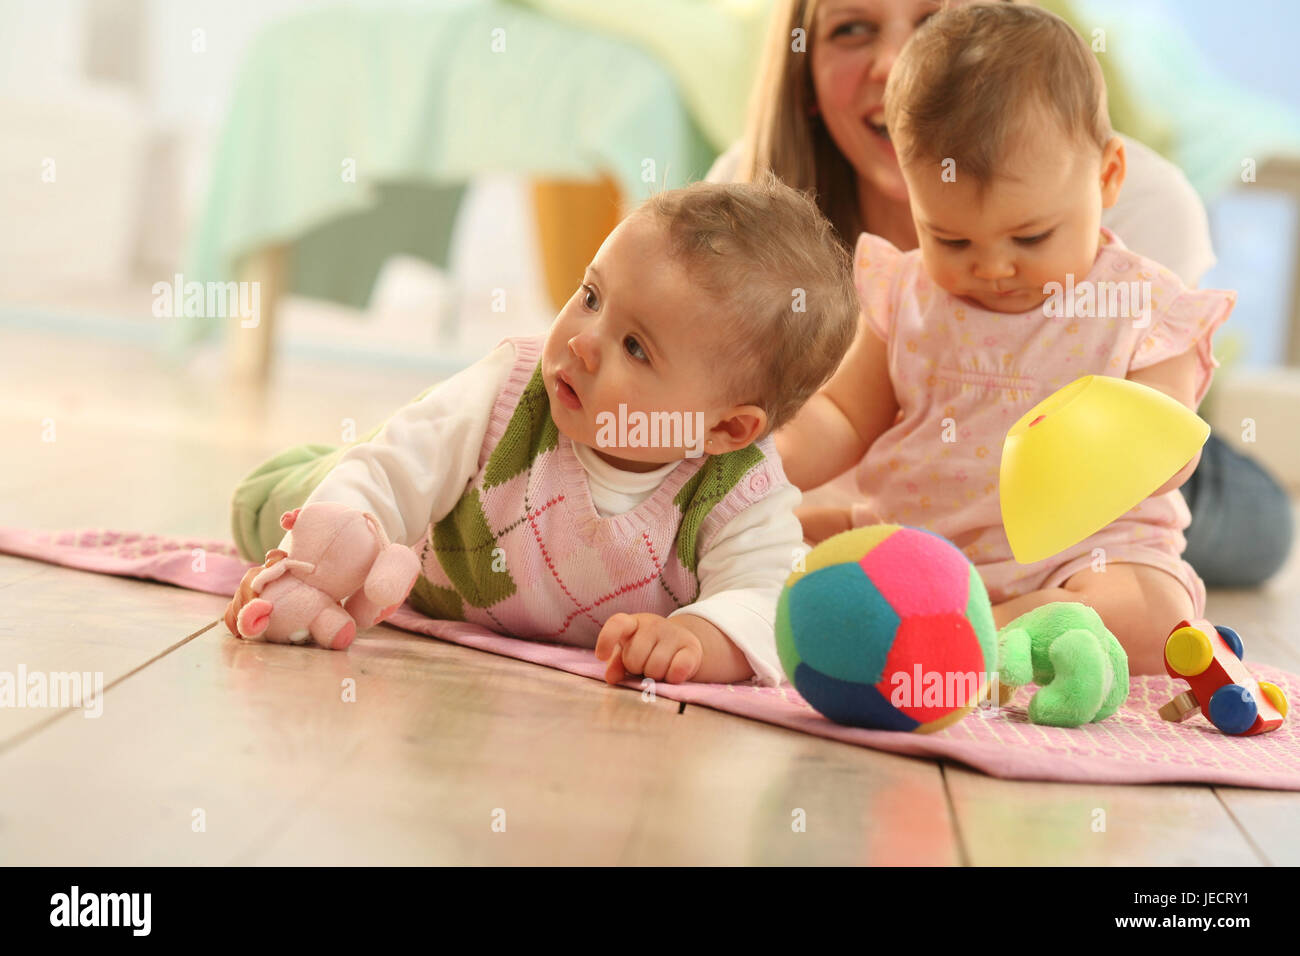 two babies, game group, mother, social behaviour, toys, share, try out, - Stock Image